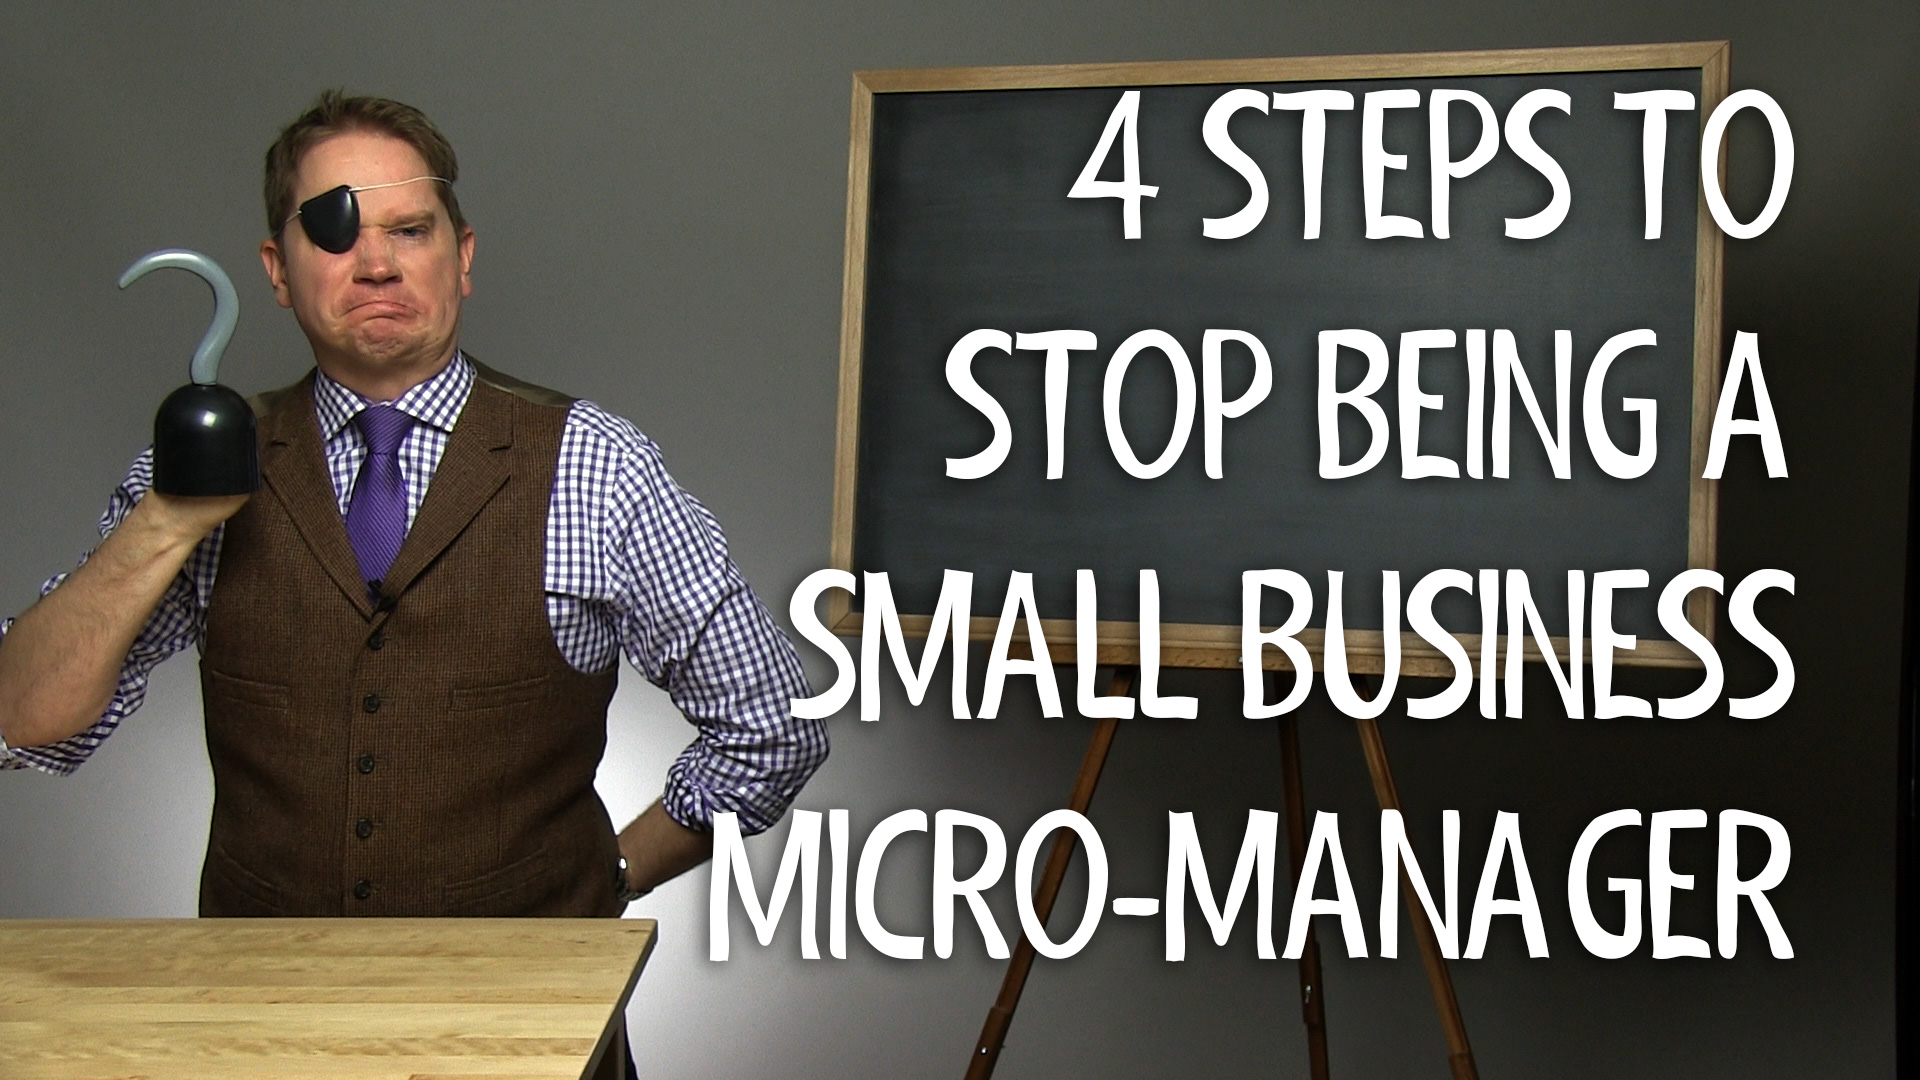 4 Steps to Stop Being a Small Business Micro-Manager – Do's and Don'ts